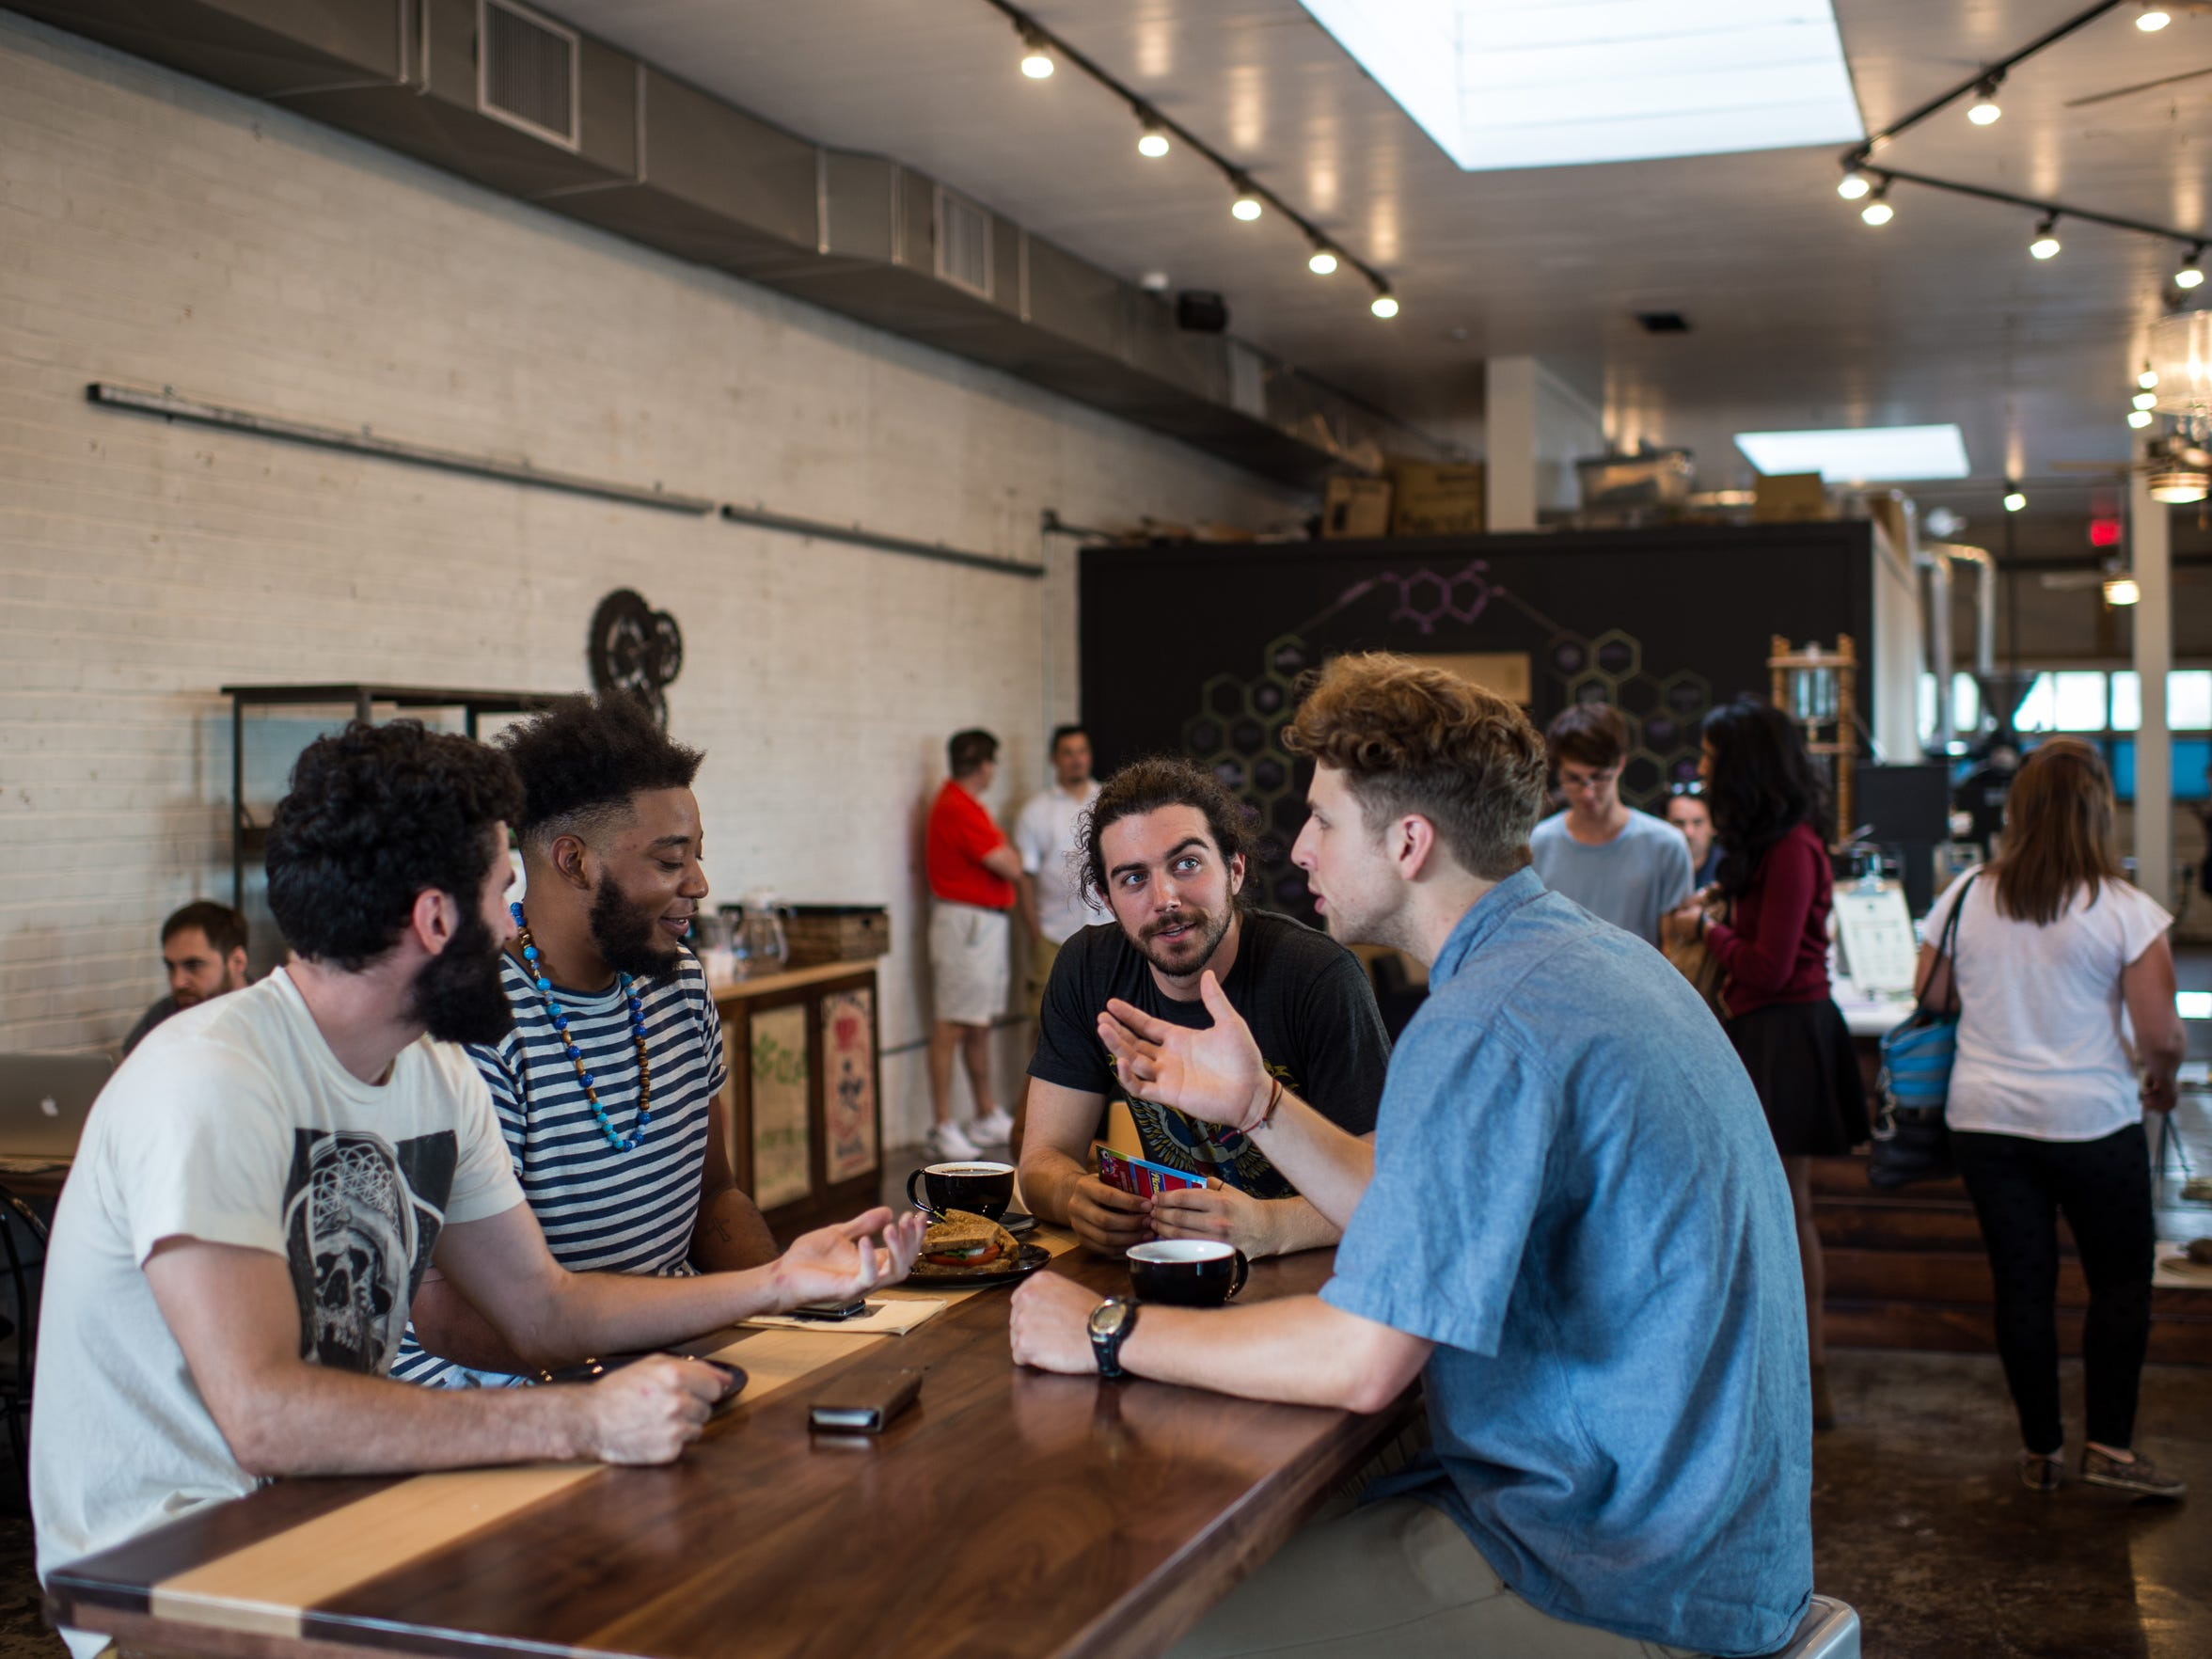 Customers converse at Reve Coffee Roasters in downtown Lafayette.